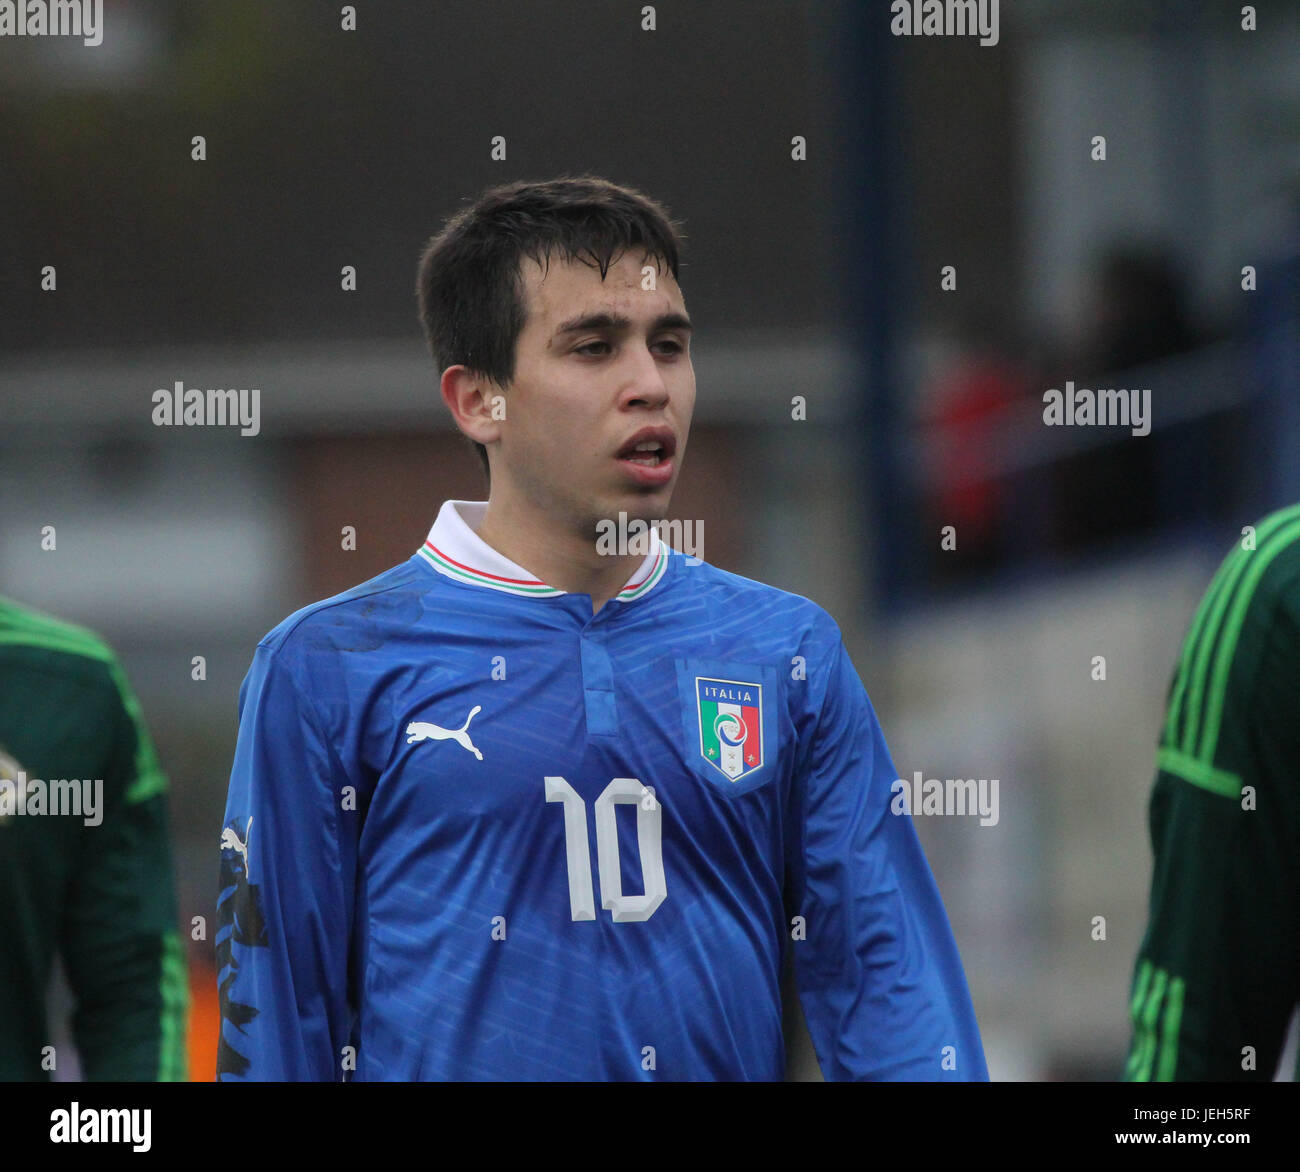 Mourneview Park, Lurgan. 05 March 2014. UEFA U21 Championship 2013-2015 Group 9 - Northern Ireland 0 Italy 2. Italy's - Stock Image